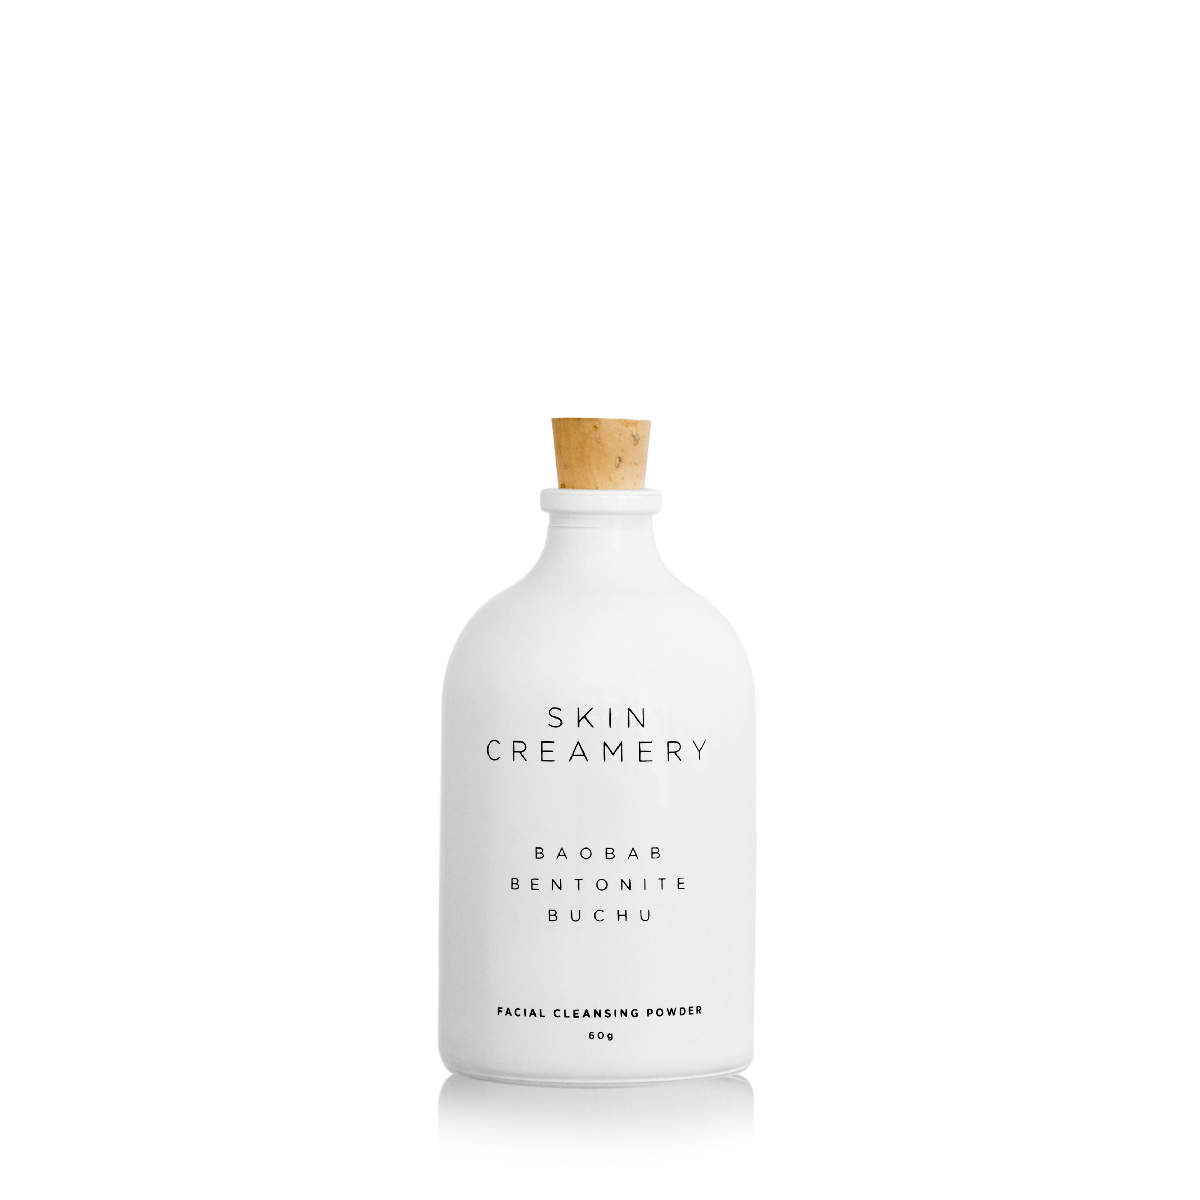 Facial Cleansing Powder by Skin Creamery